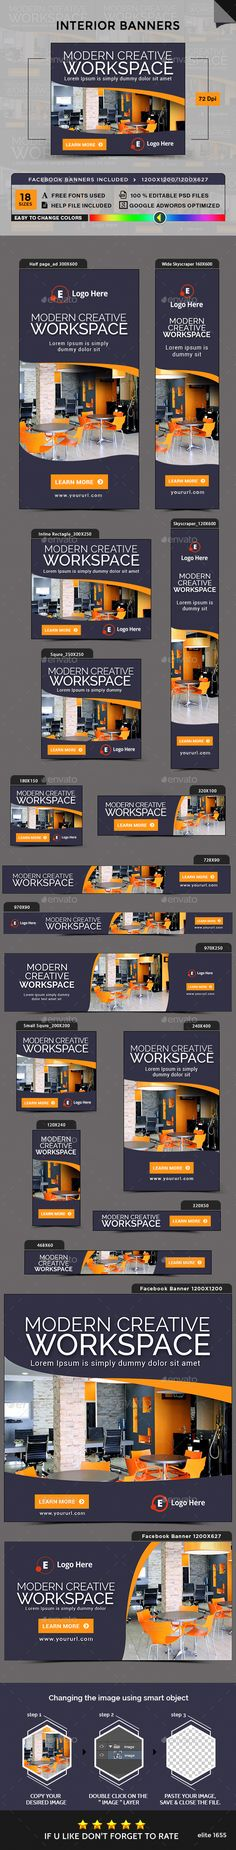 Interior Banners Template PSD. Download here: https://graphicriver.net/item/interior-banners/17104730?ref=ksioks